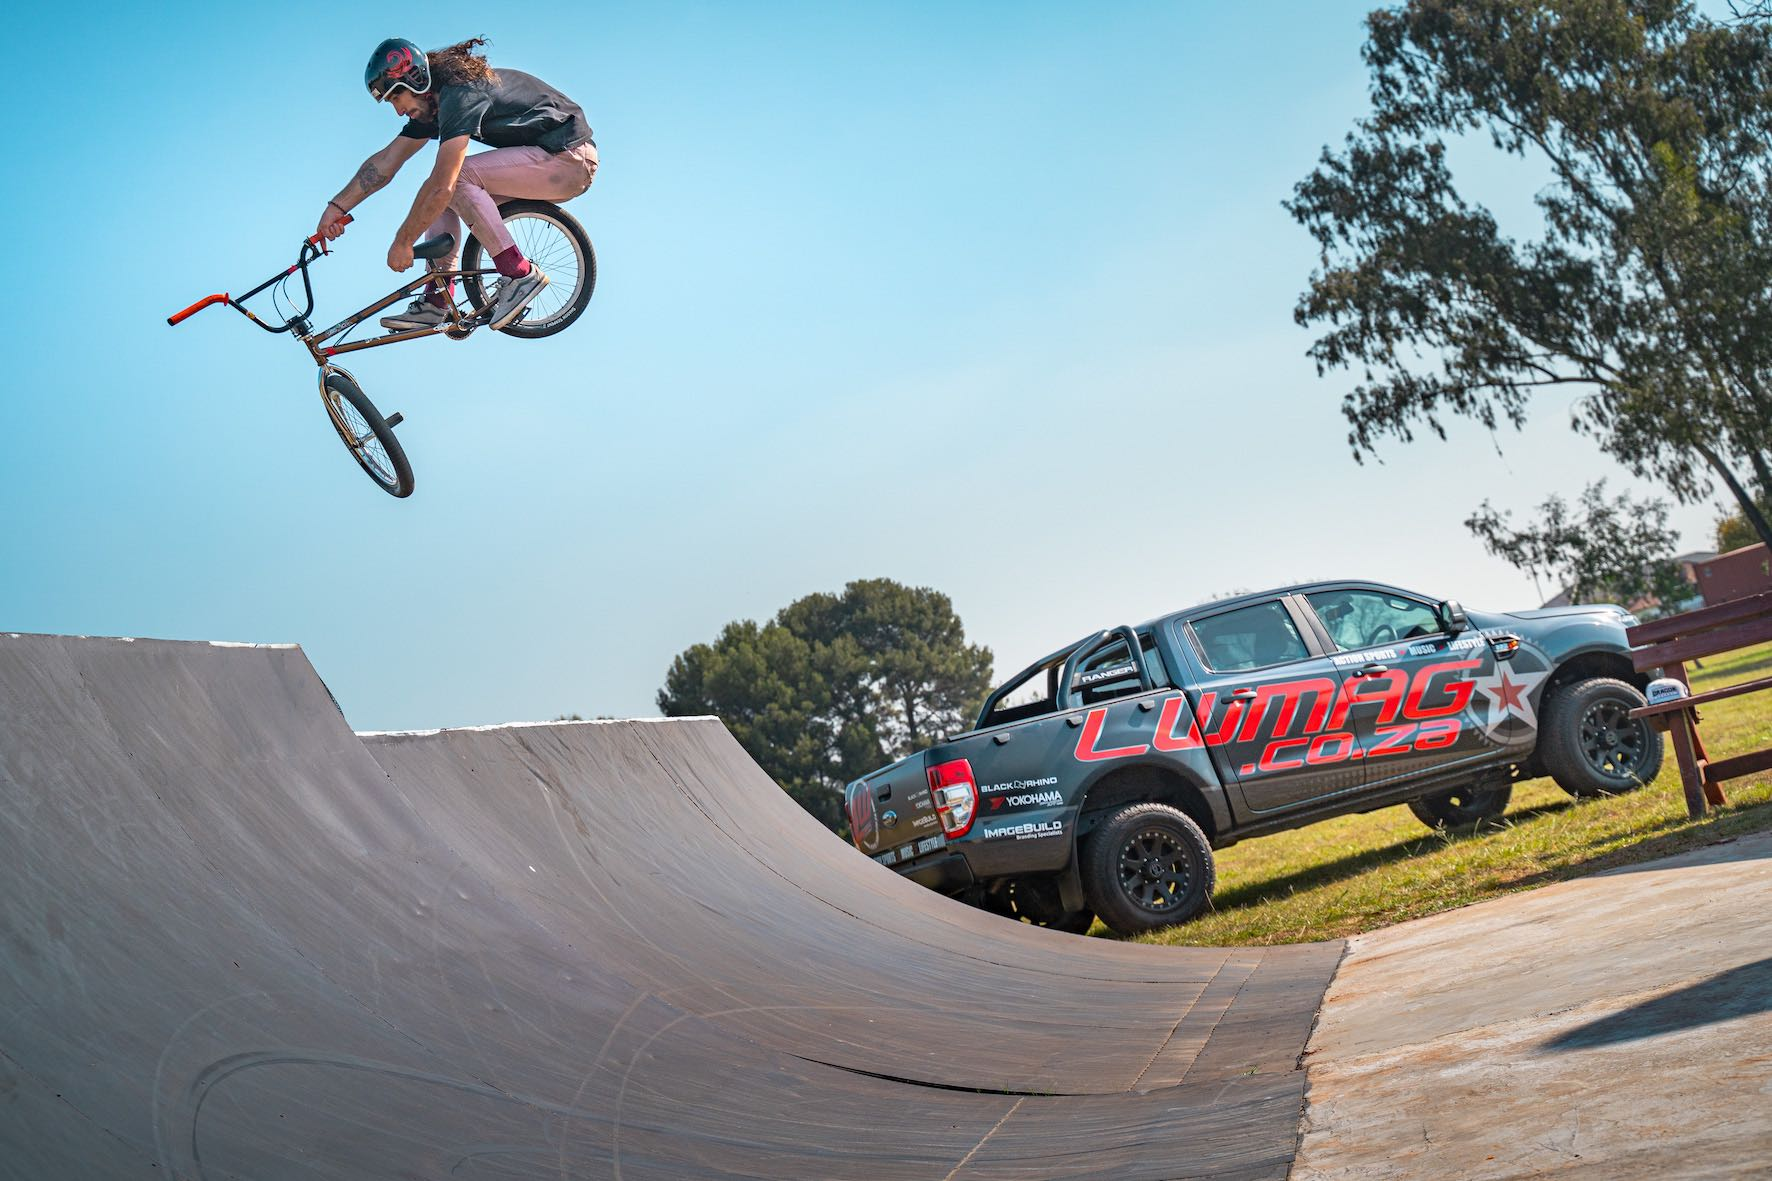 LW Mag and Dragon Energy present Backyard Stoke with BMX rider, Vincent Leygonie